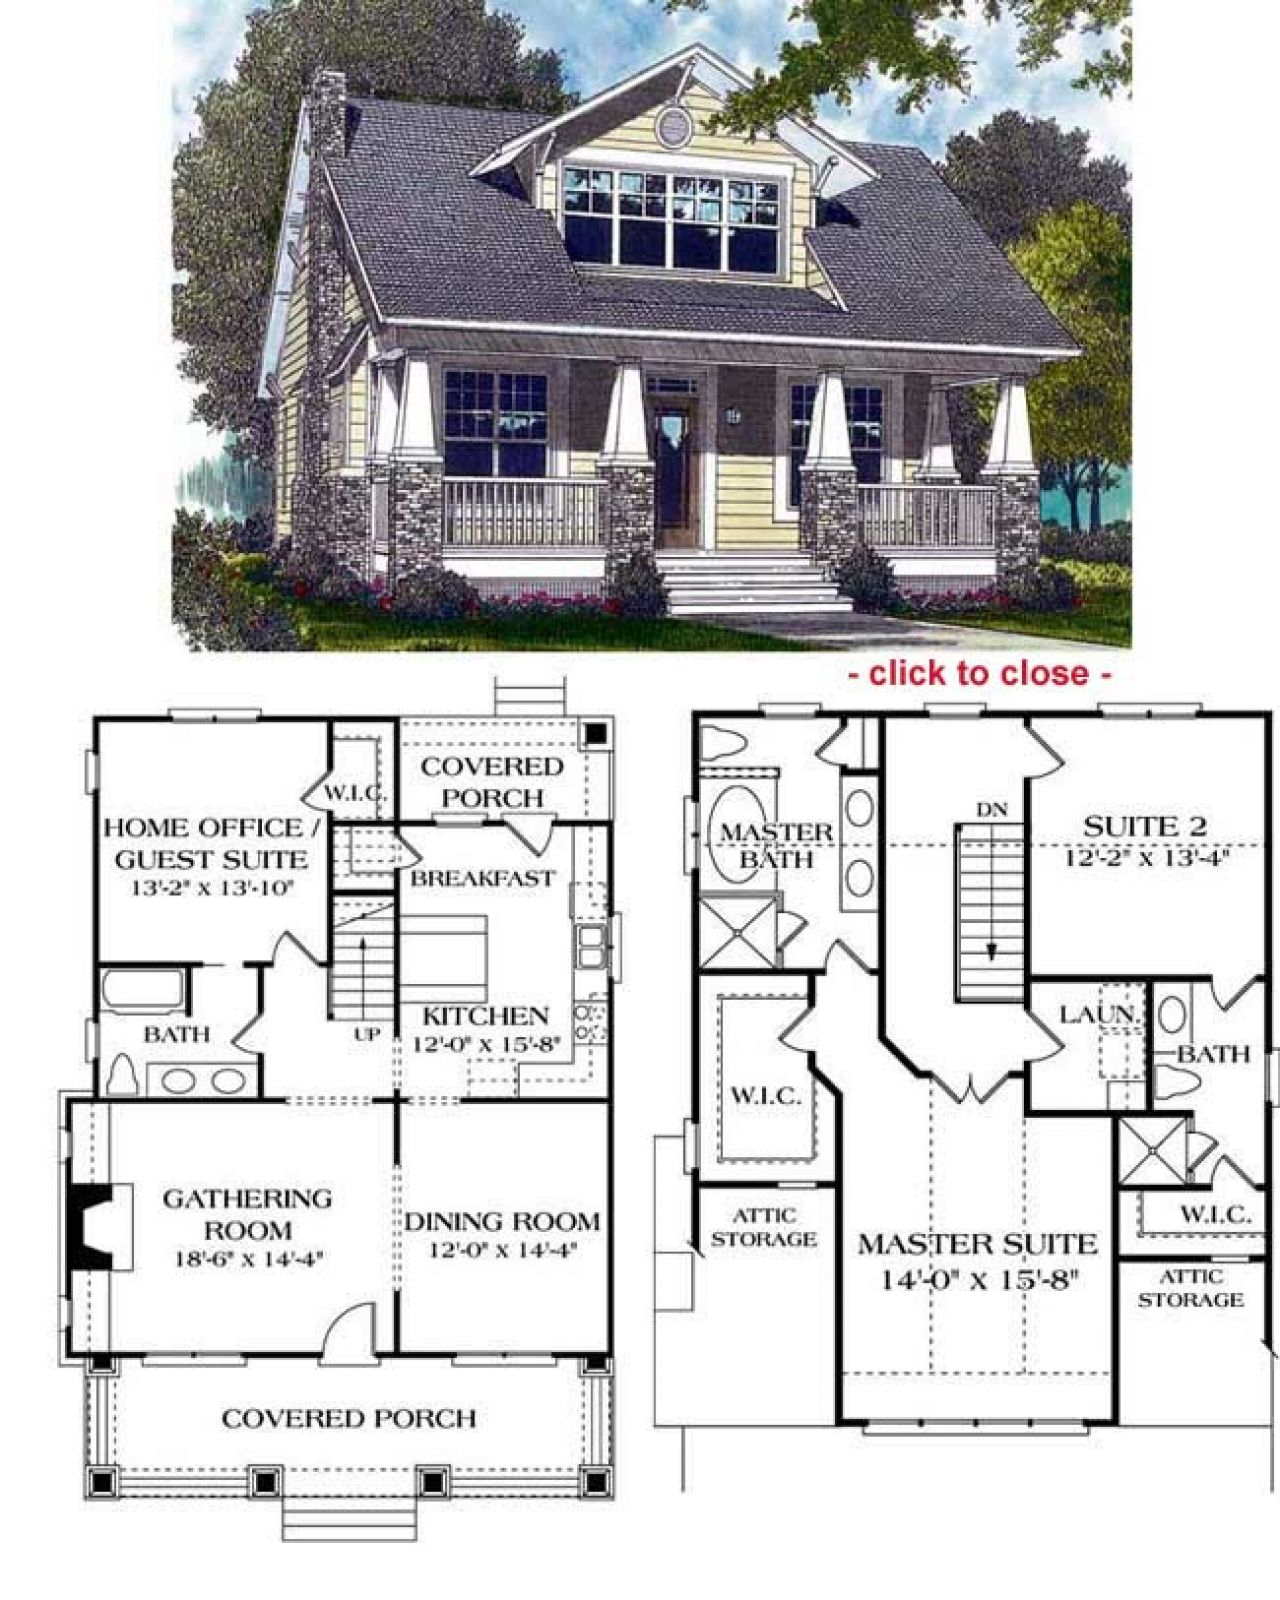 Bungalow house styles craftsman house plans and for American craftsman house plans